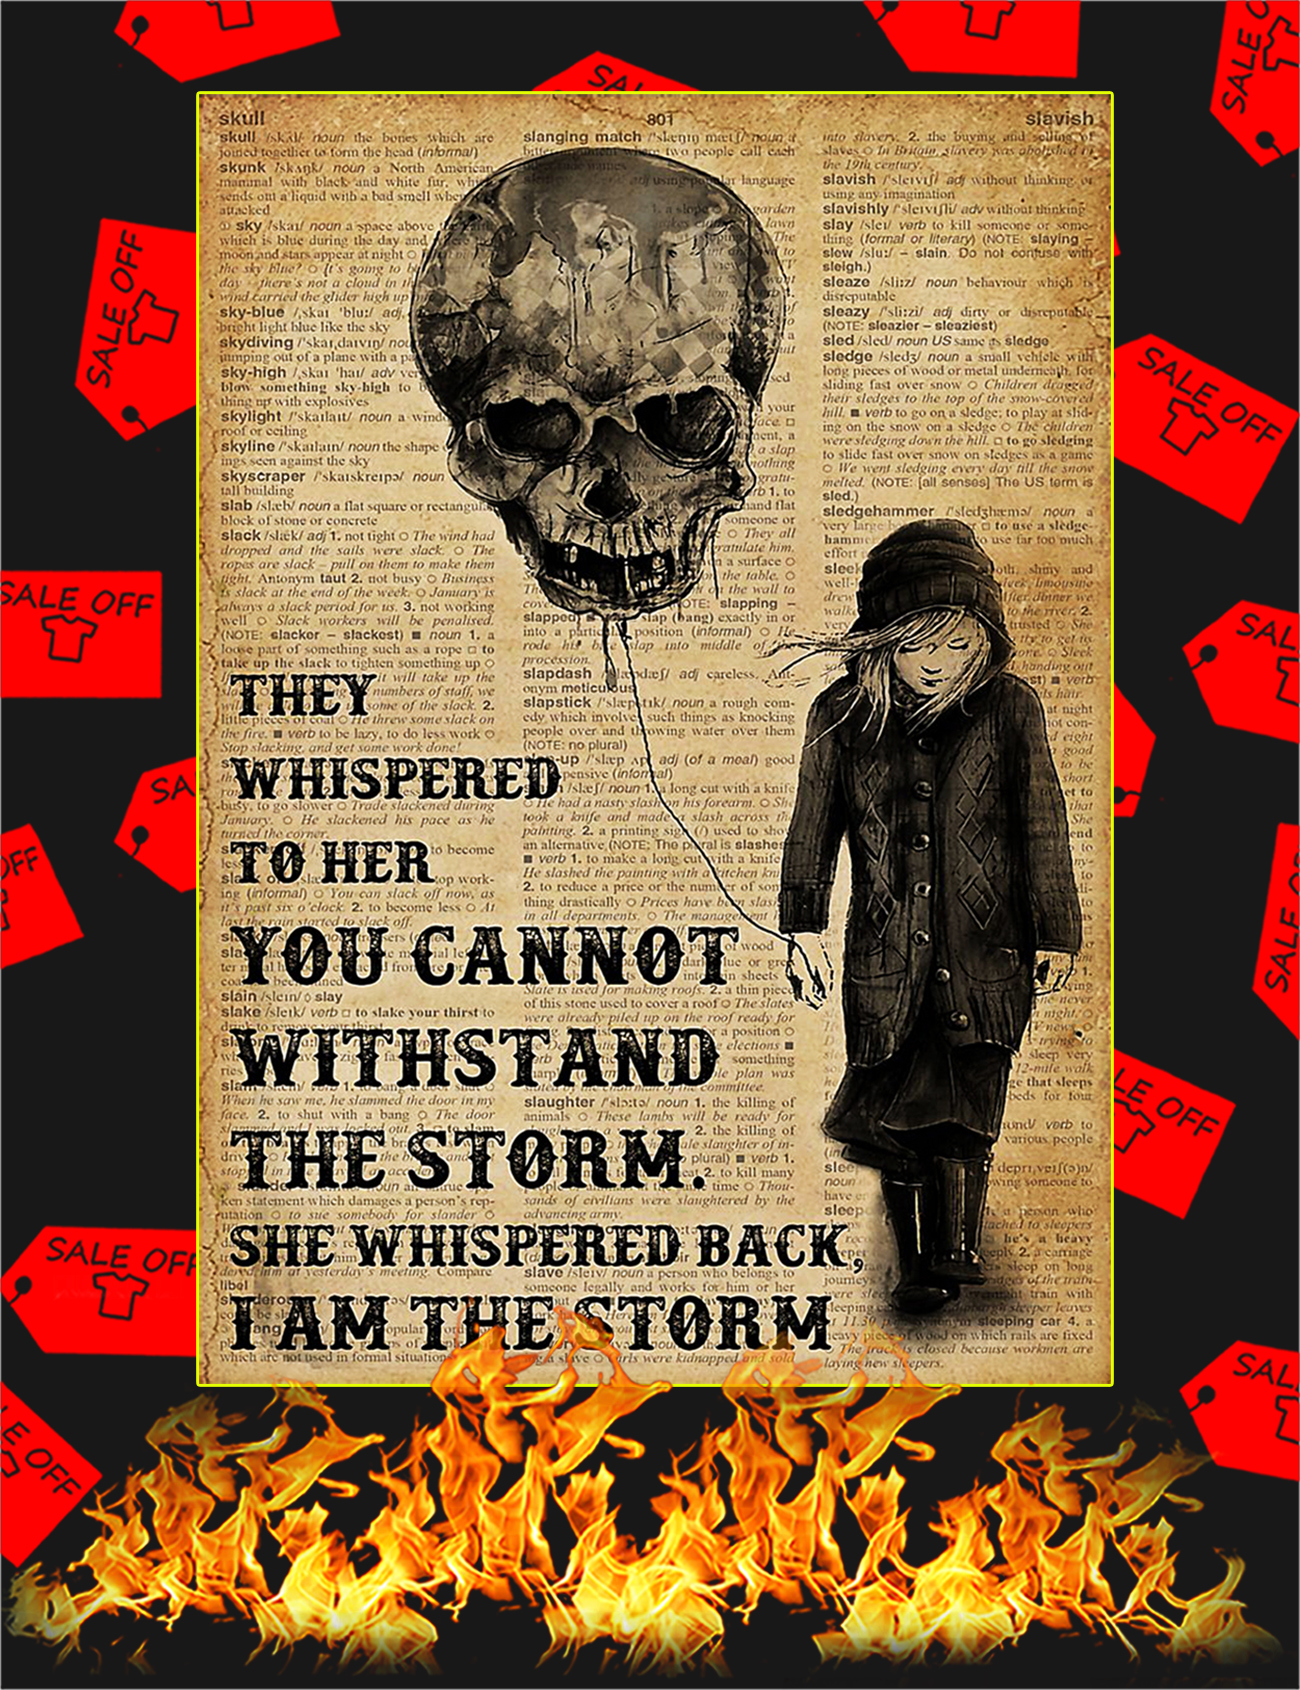 Balloon skull I am the storm poster - A1